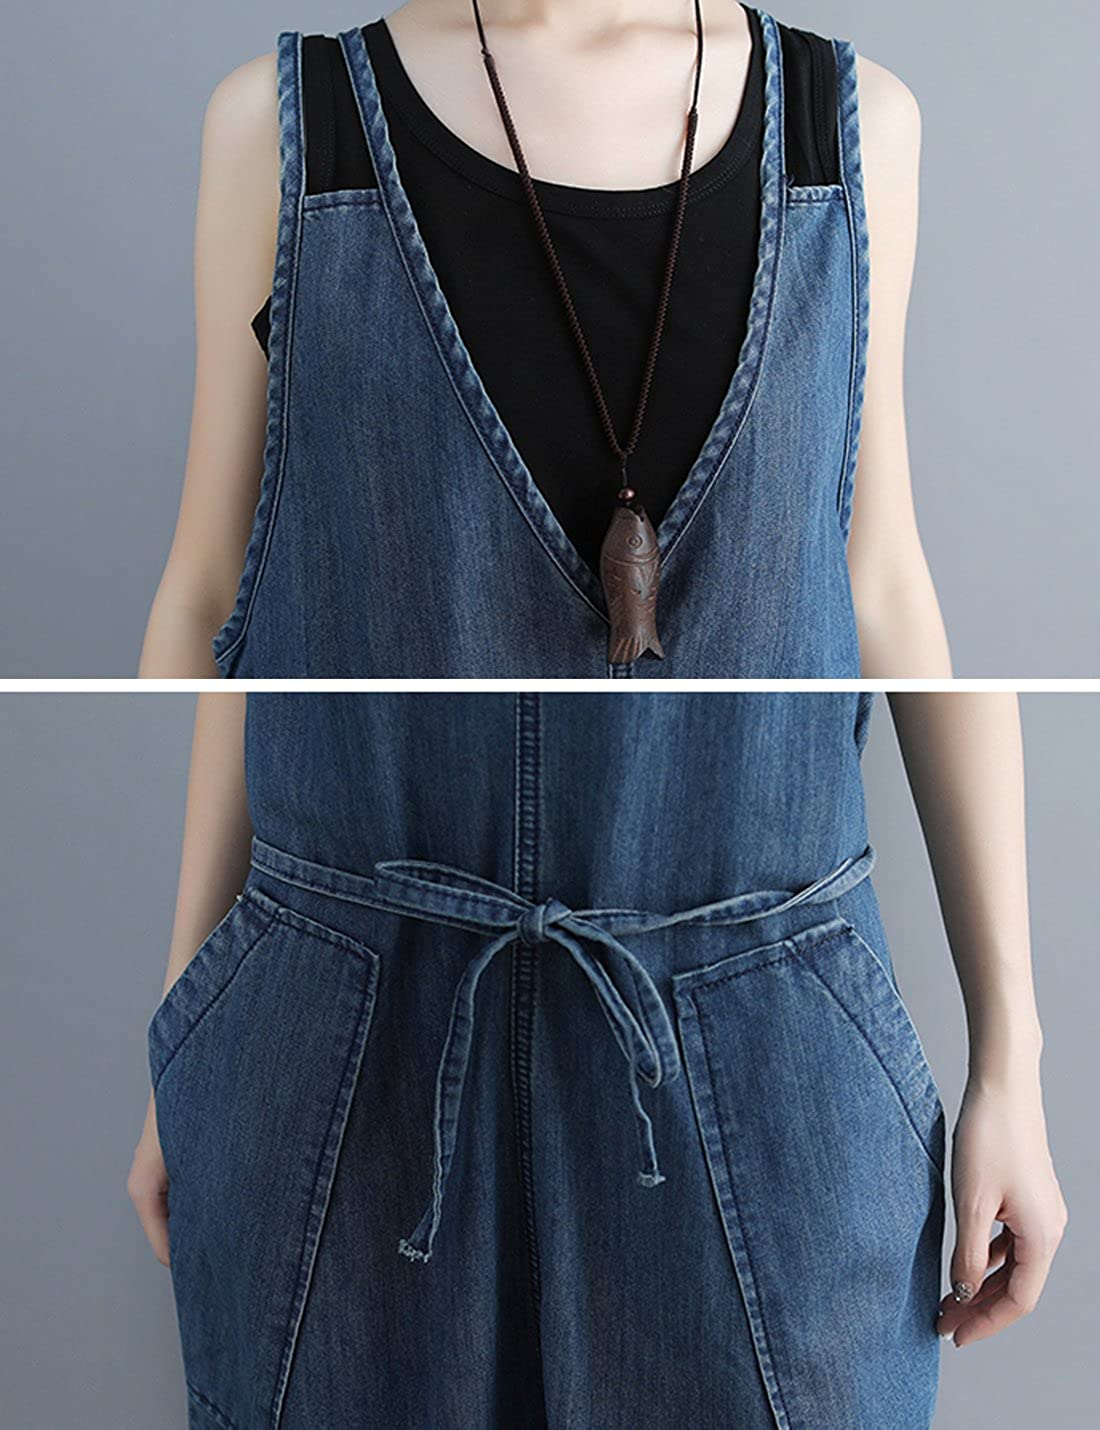 44051dcfb74 Amazon.com  Flygo Women s Loose Baggy Wide Leg Denim Jumpsuits Overalls  Rompers Cropped Harem Pants with Big Pockets  Clothing